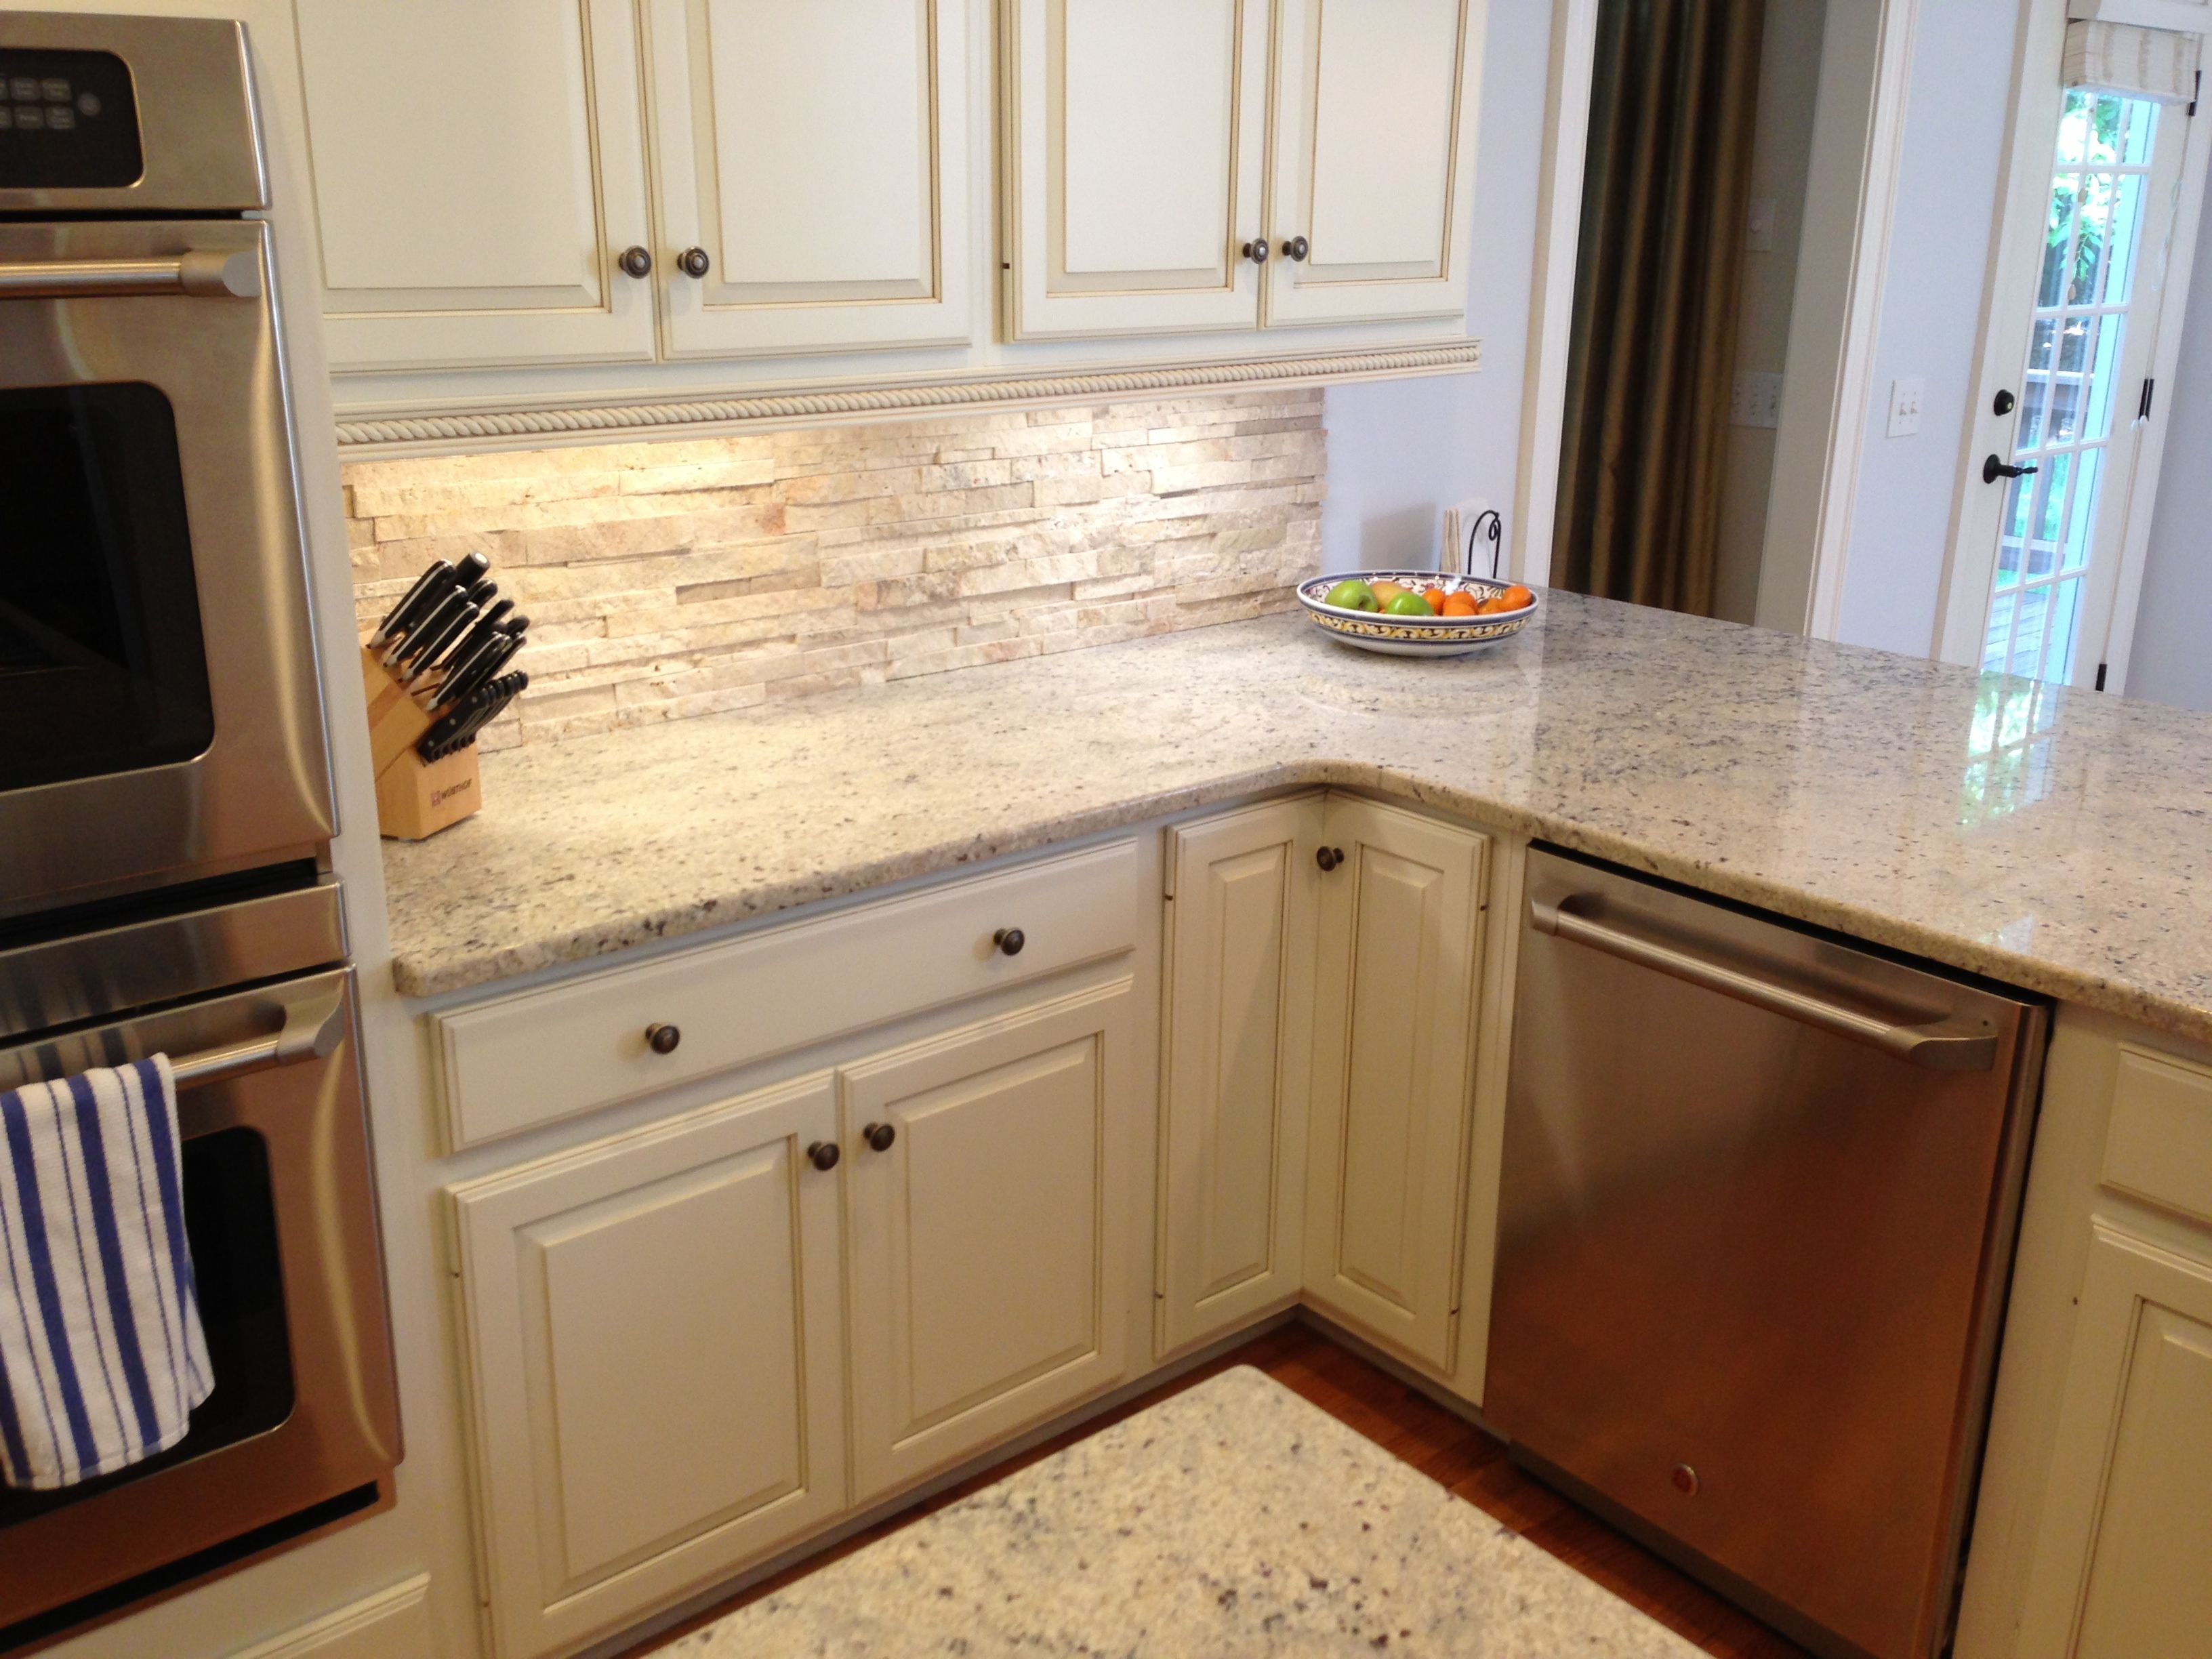 Backsplashes For White Kitchens Travertine Backsplash With Bone White Cabinets And Crema